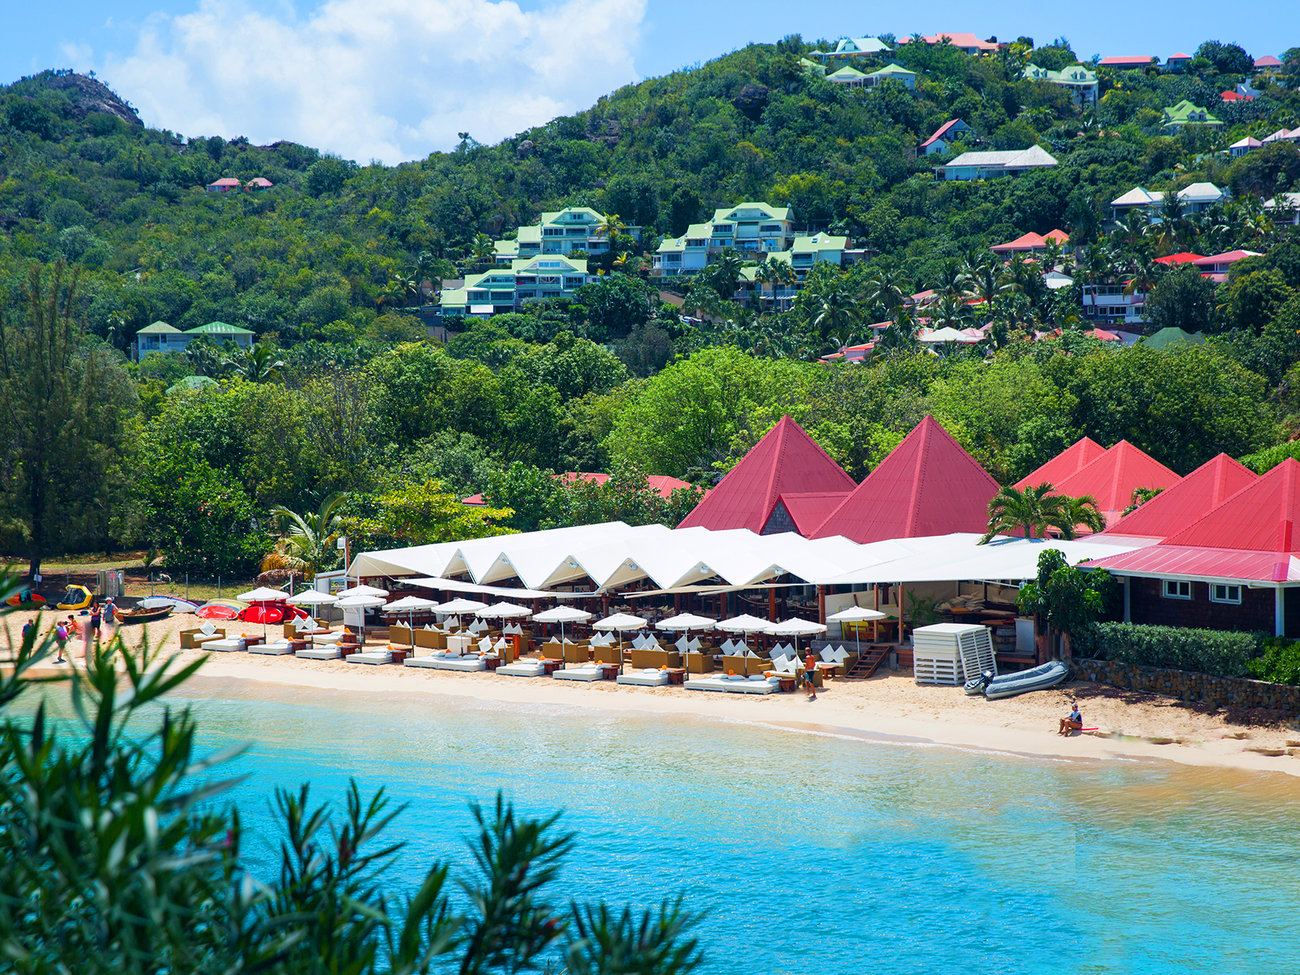 Nikki Beach Club in St. Barts